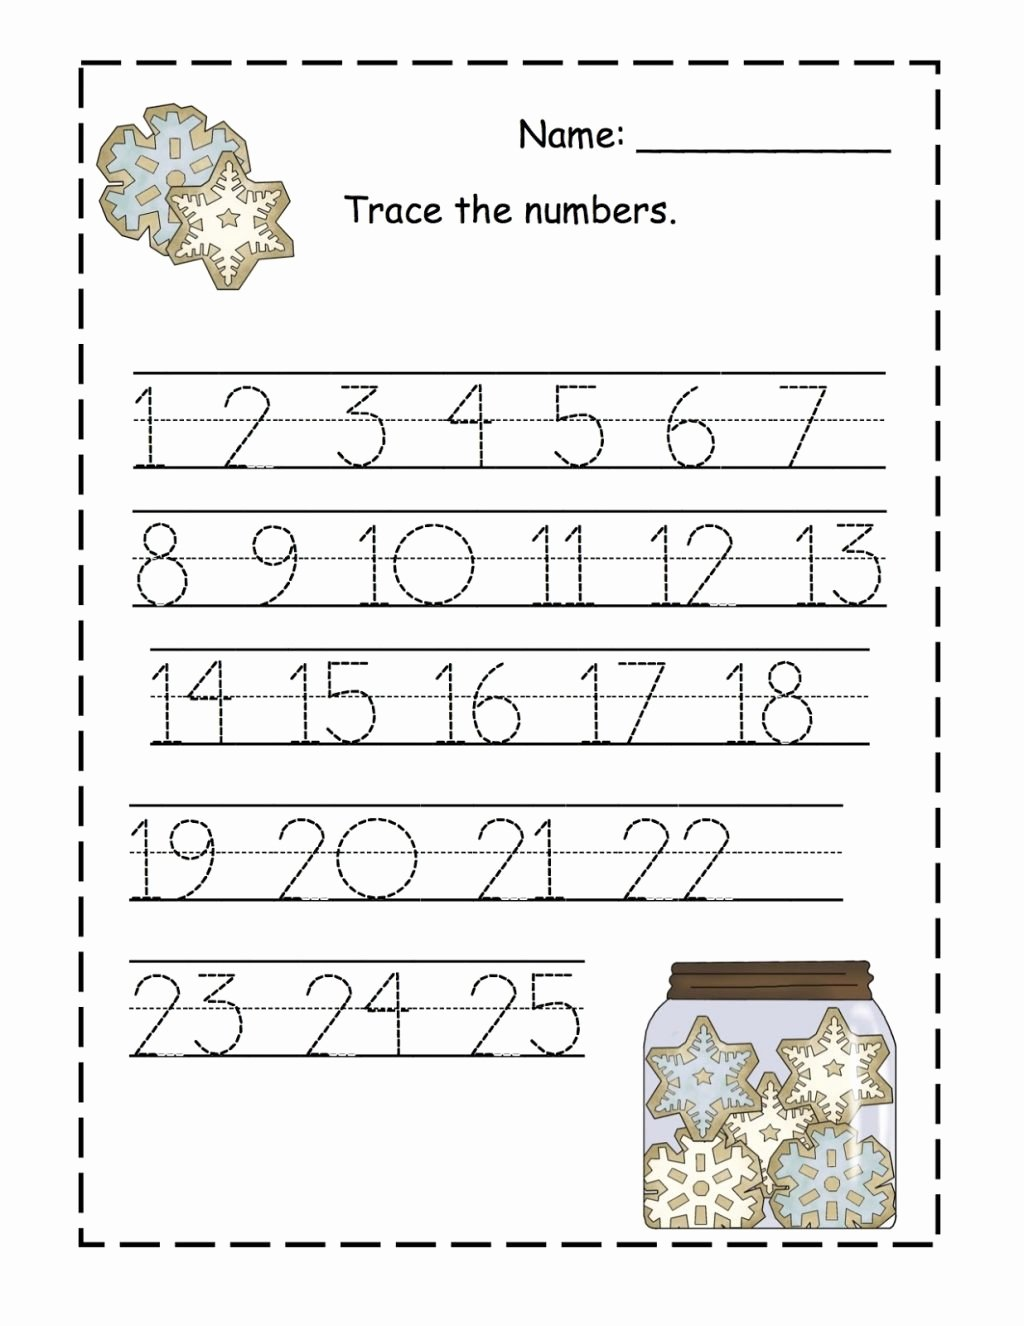 Free Worksheets for Preschoolers Trace Fresh Worksheet Worksheet Free Tracing Worksheets astonishing